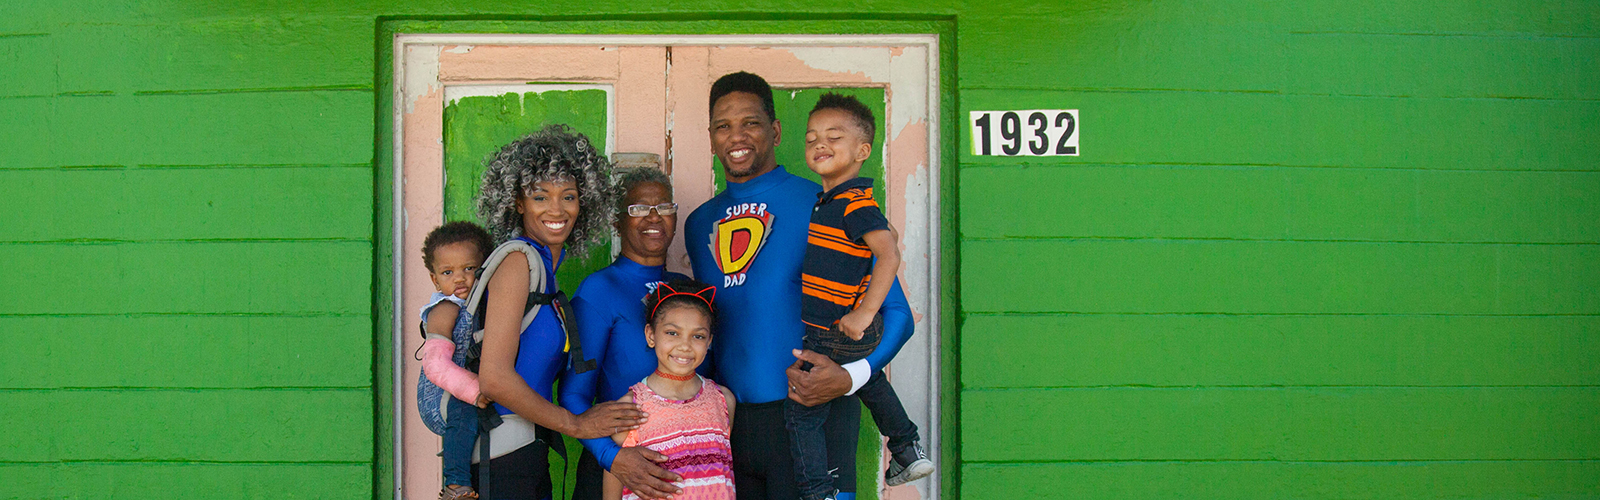 Founders of Joining Together Eliminating Poverty with their kids and grandkids at their future headquarters in West Tampa.  <span class=&apos;image-credits&apos;>Amber Sigman</span>